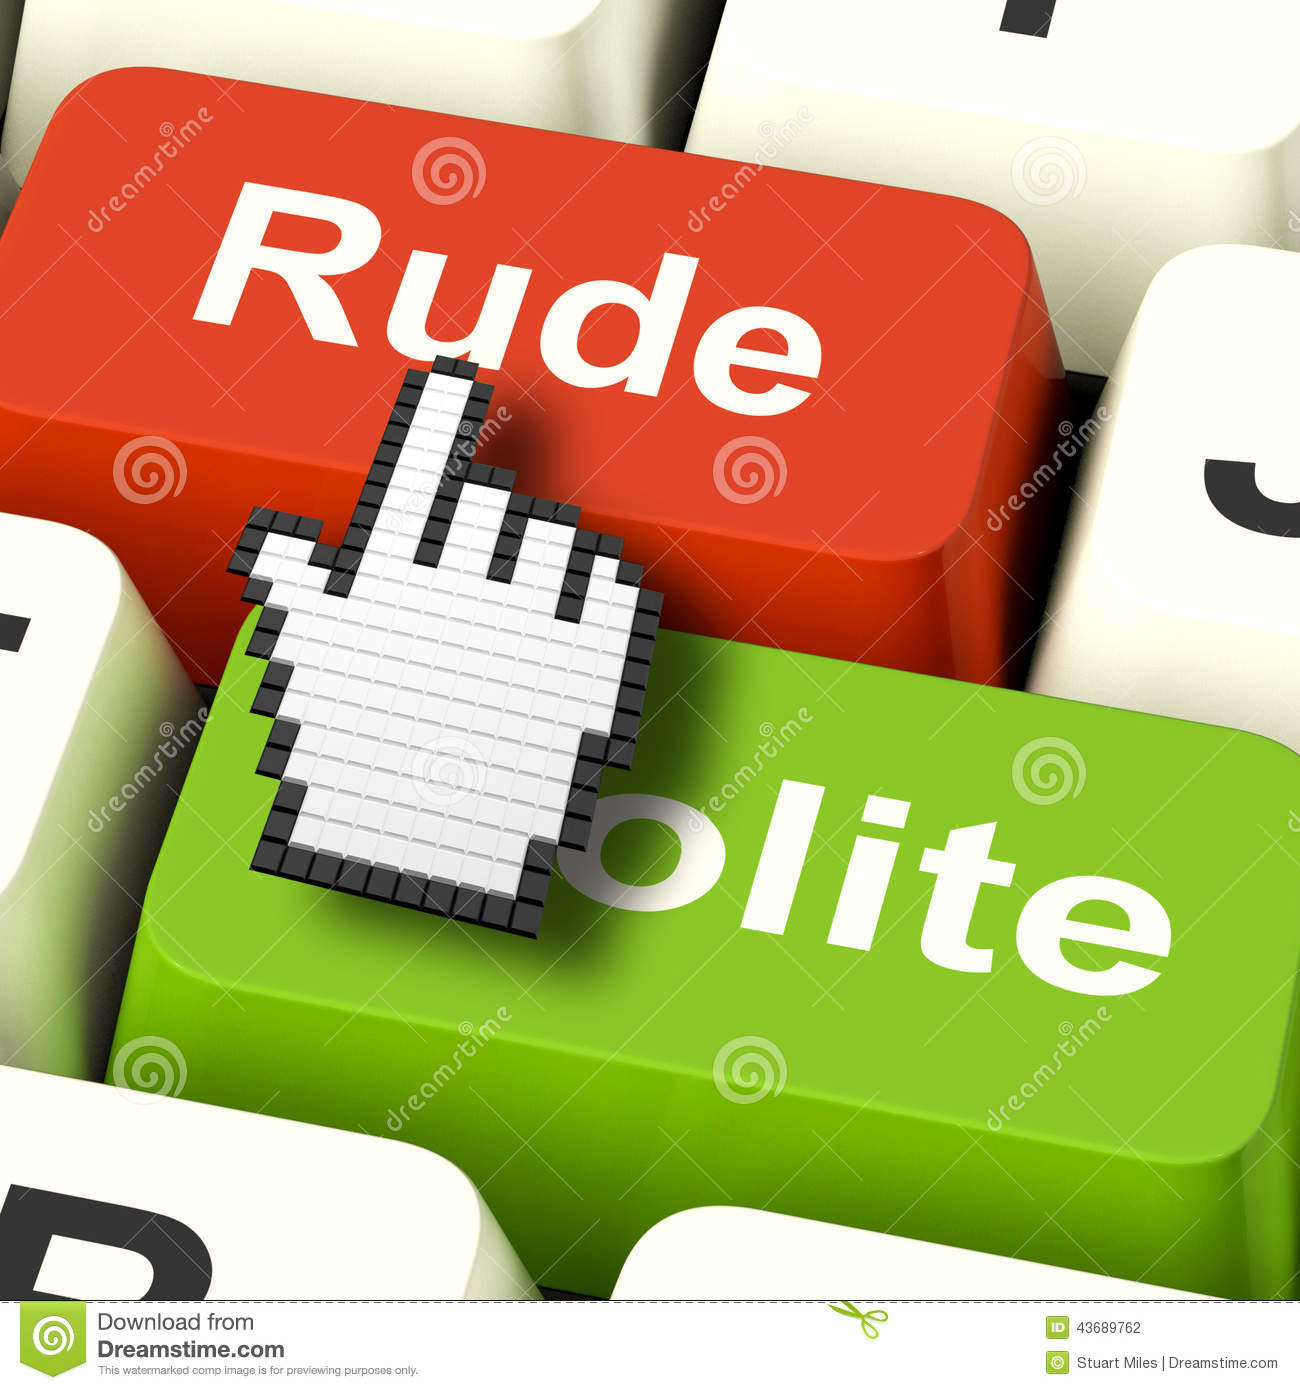 rude impolite computer means insolence bad manners stock table manners clipart bad table manners clipart